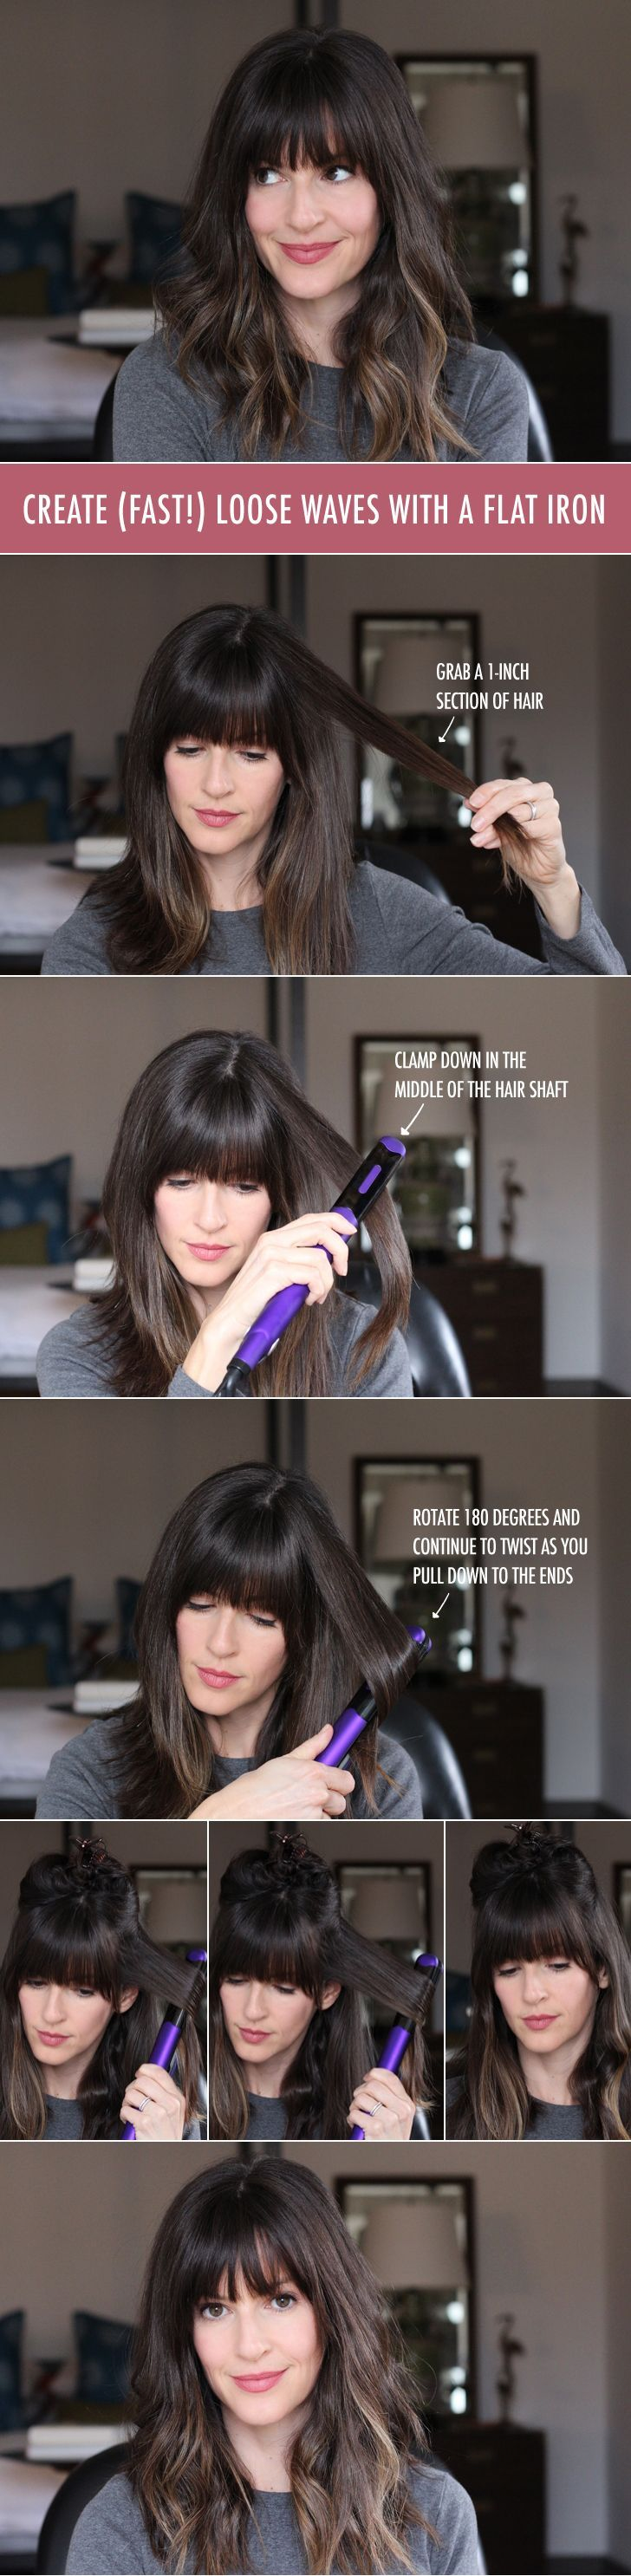 How to create waves with a flat iron. #sallybeauty #ad...